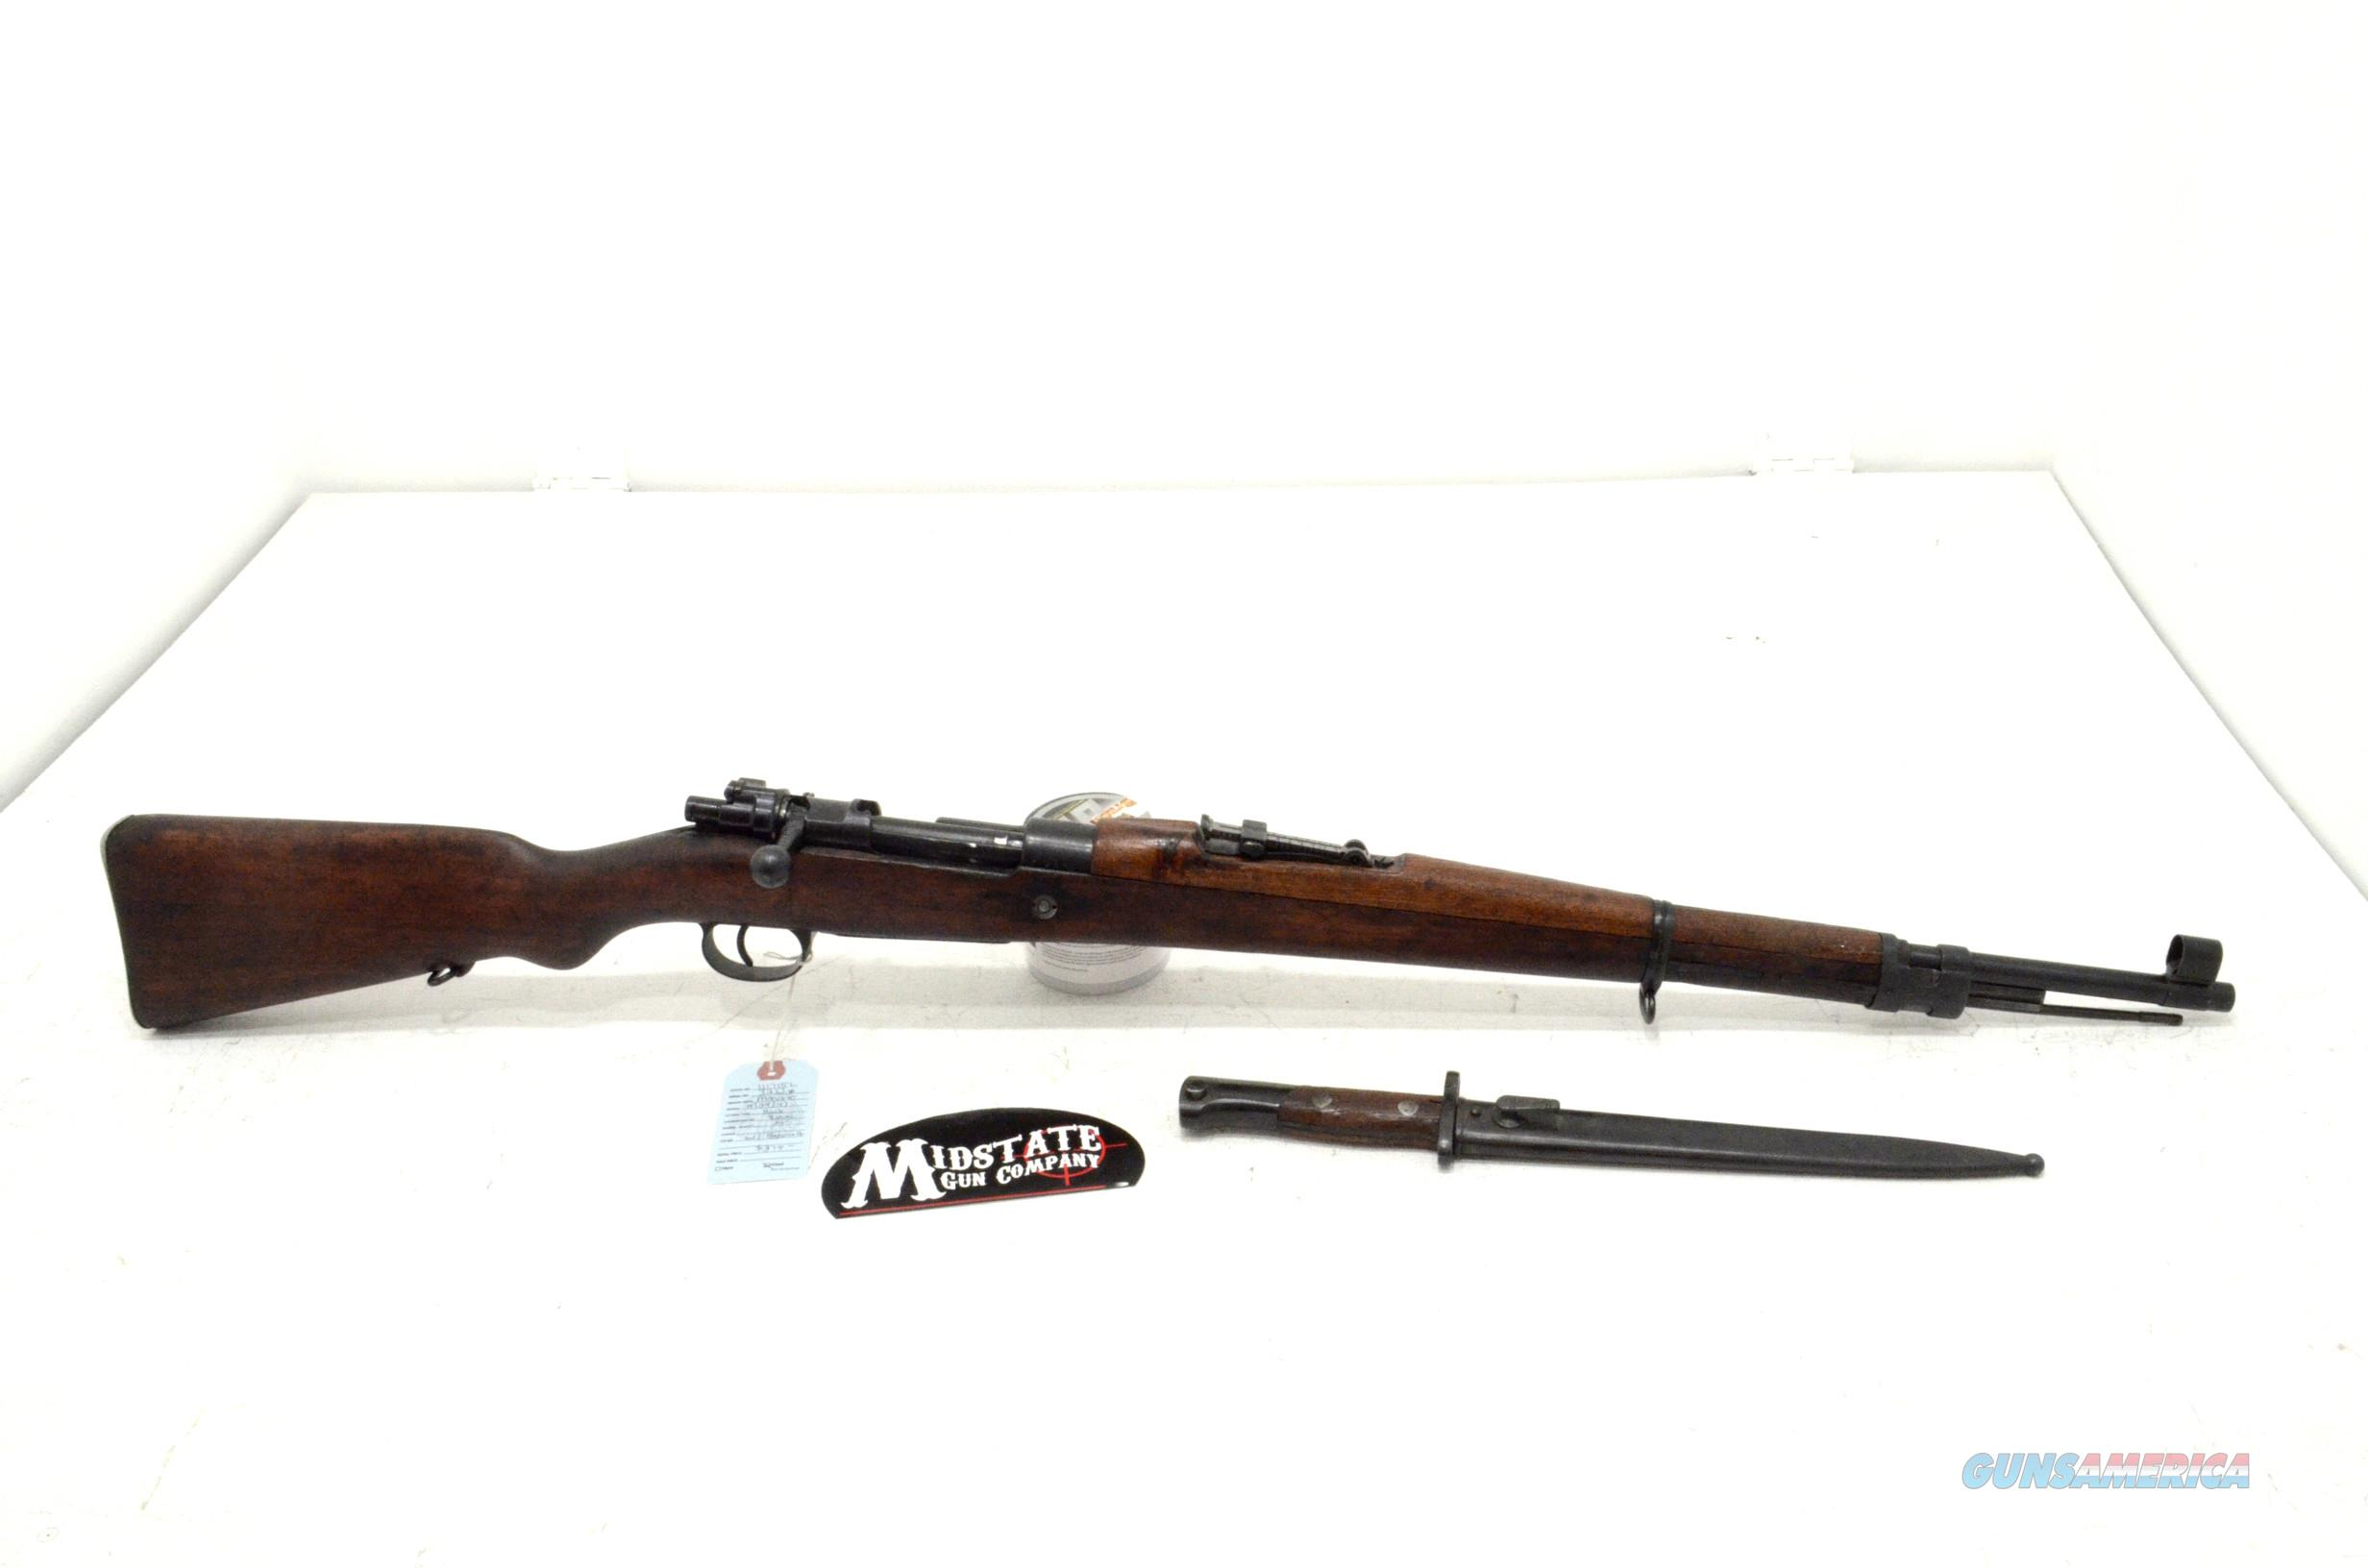 Mauser M24/47 8mm Russian w/ bayonet  Guns > Rifles > Mauser Rifles > German